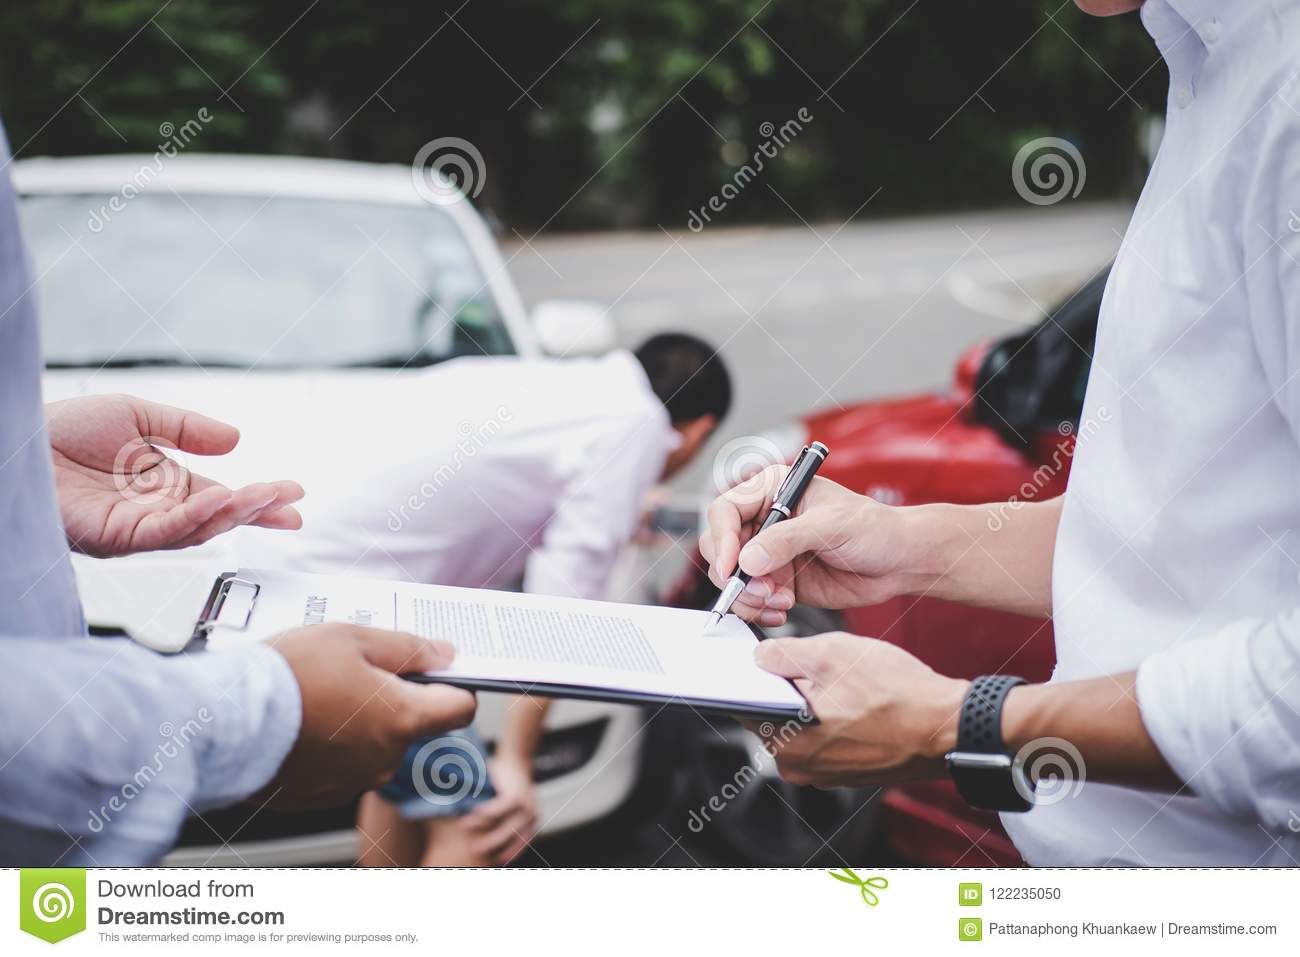 Insurance Agent examine Damaged Car and customer filing signature on Report Claim Form process after accident, Traffic Accident